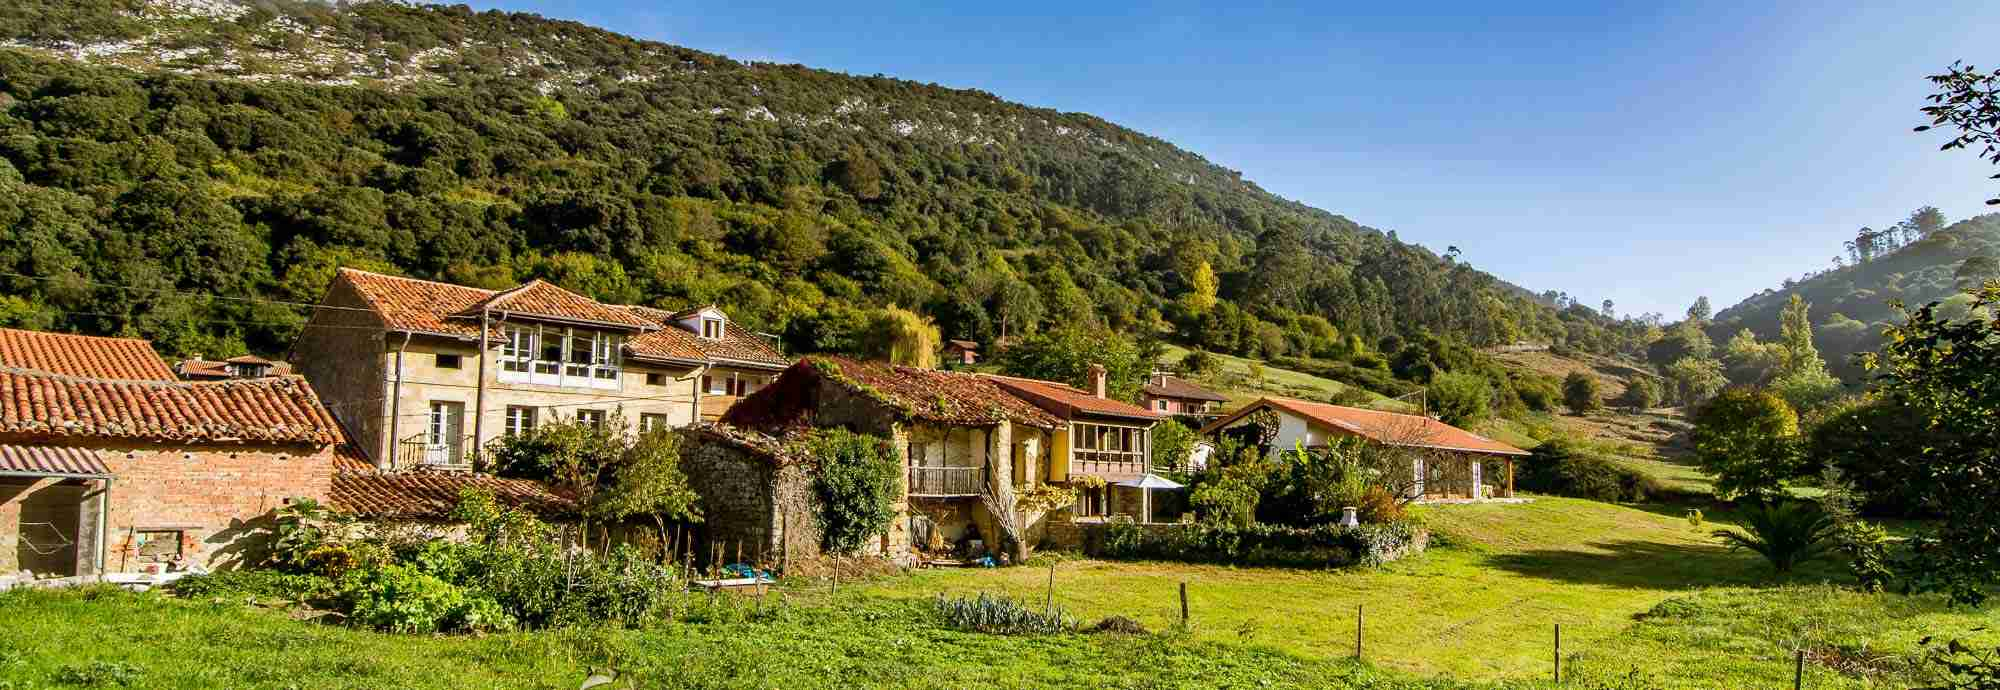 Deals for Holiday  Villas in Northern Spain near the beach